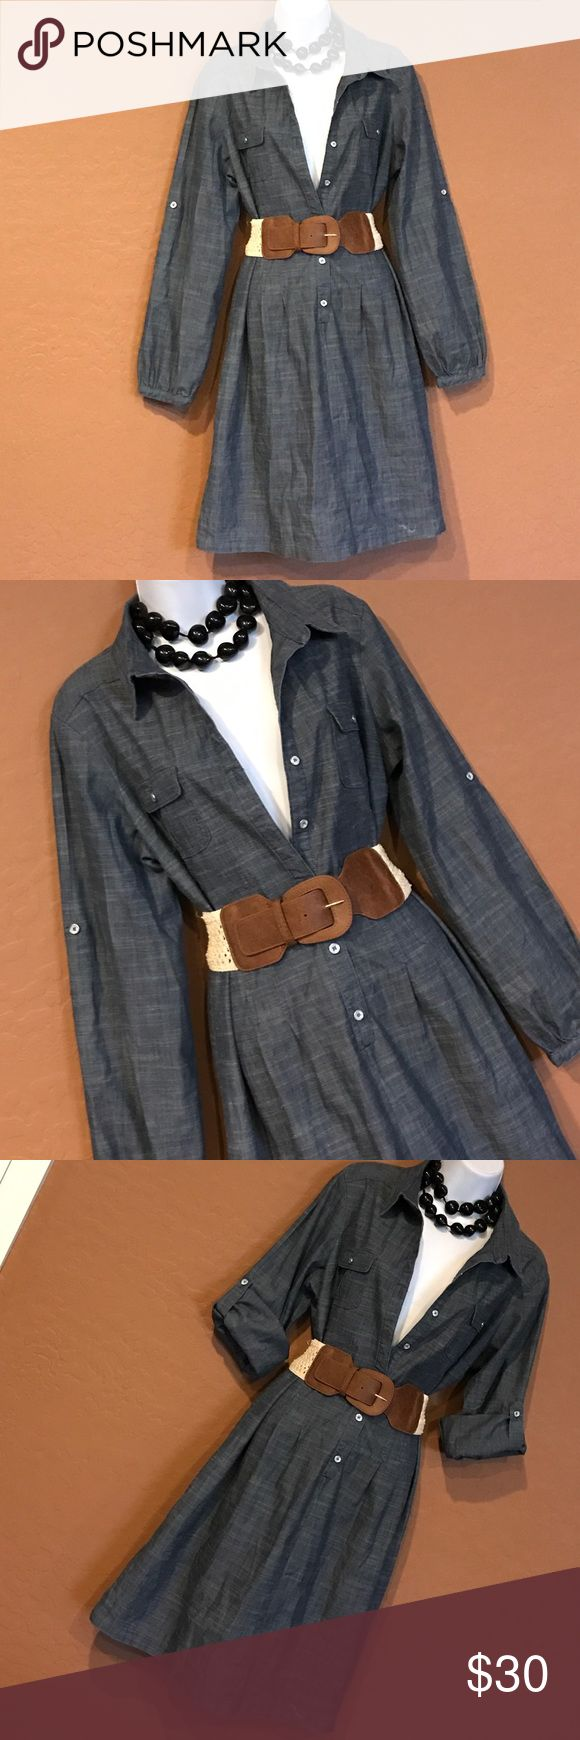 🎉HP🎉 Blue Jean Shirt Dress Never Worn, can worn long or 3/4 fold sleeve (see pic) button down top half, 2 front breast pockets, light weight, Cute! Accessories not included. Emma Michele Dresses